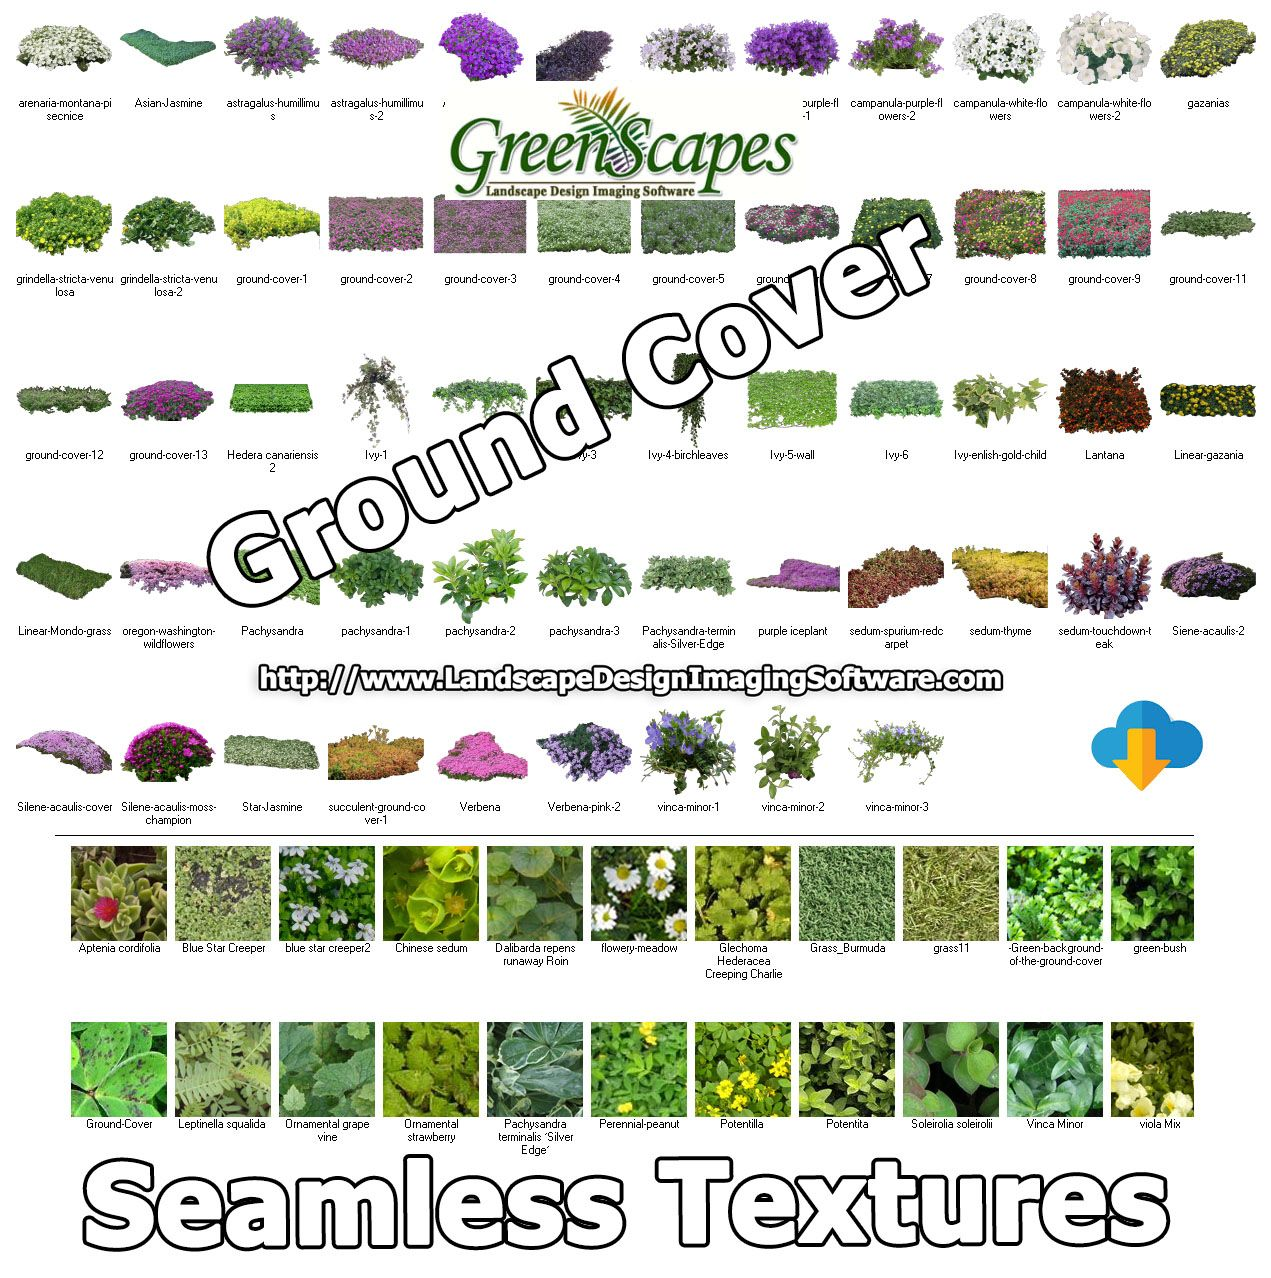 Greenscapes Clients Can Download For Free Additional Ground Cover Objects And Textures F Landscape Design Software Ground Cover Landscape Contractor